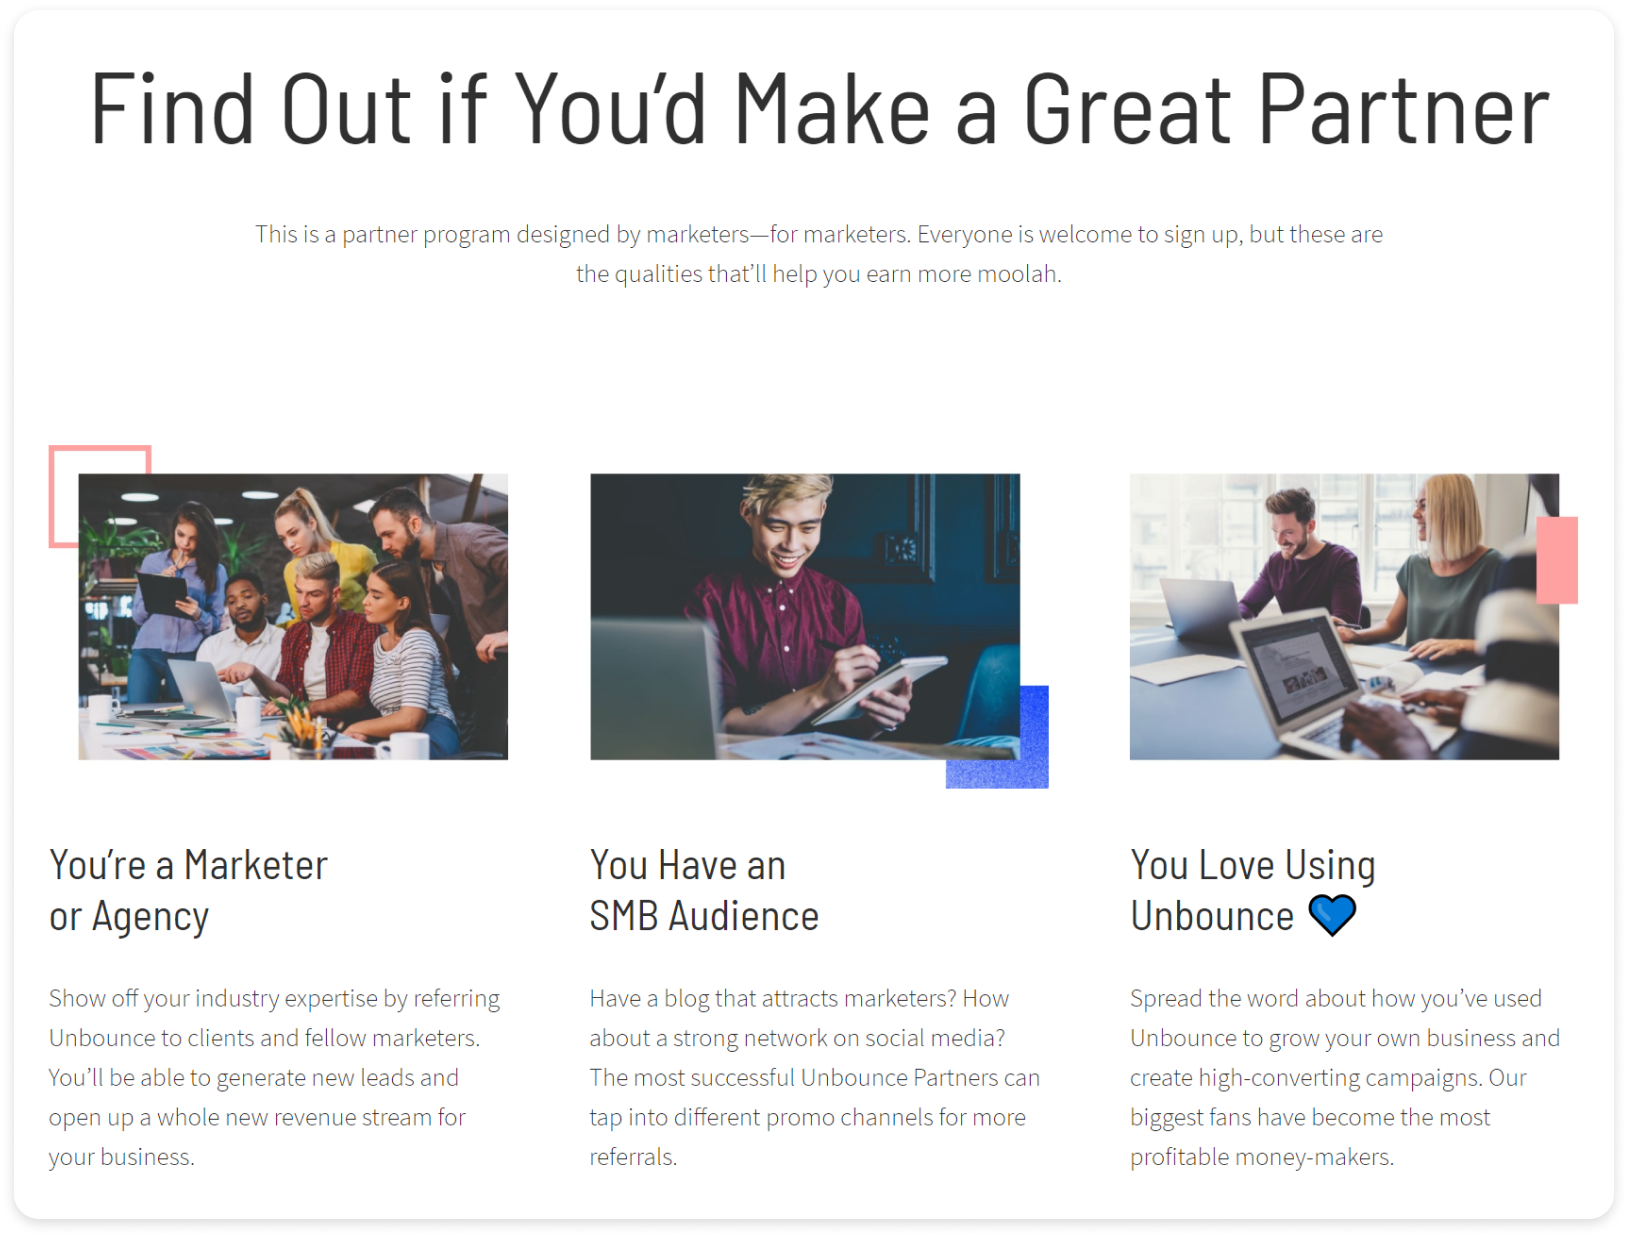 Screenshot of Unbounce's partner program webpage on why you should become a partner